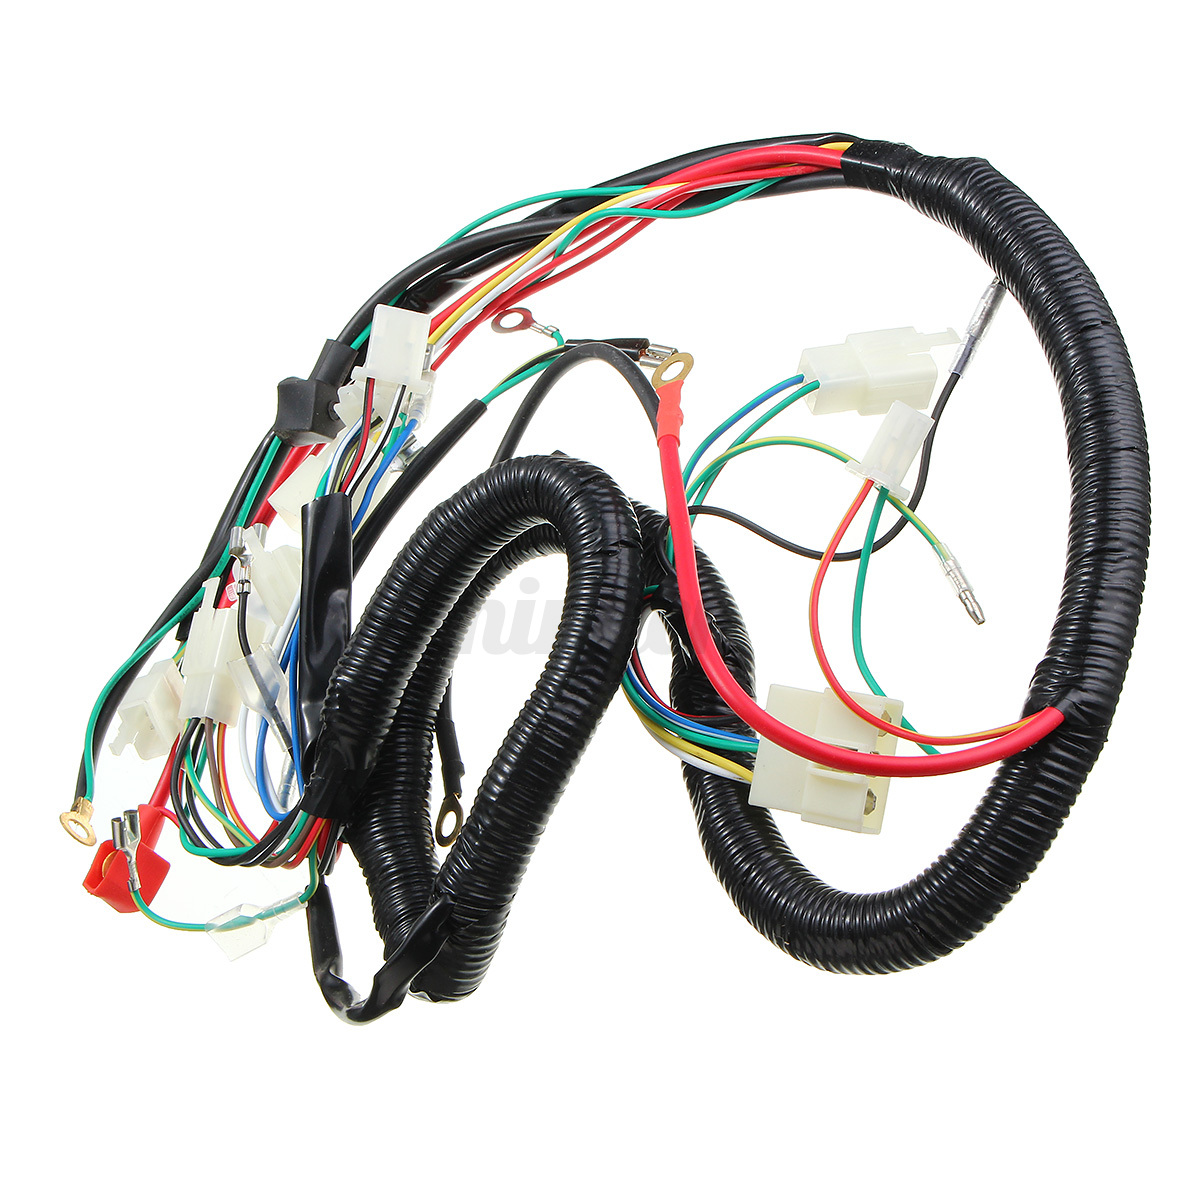 hight resolution of wiring harness quad electric cdi coil wire for zongshen zongshen 250cc wire harness zongshen 250cc manual